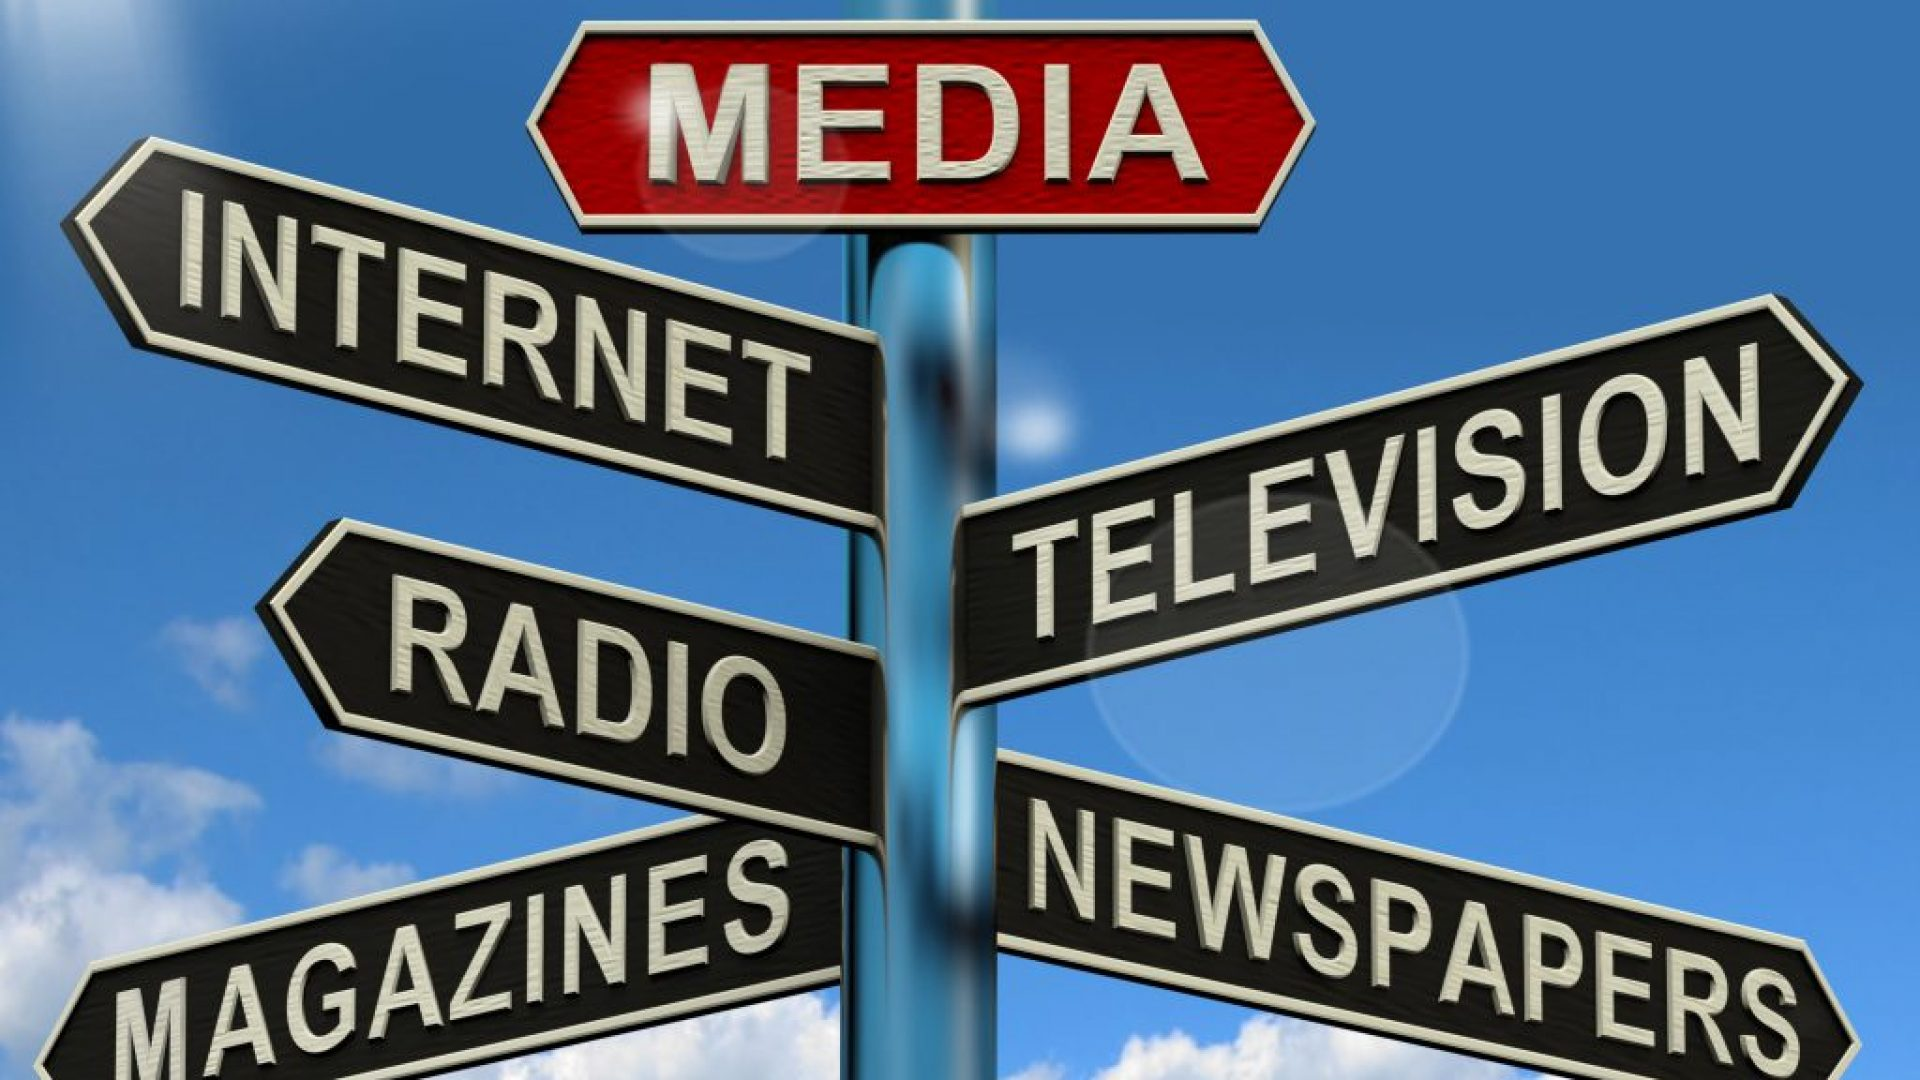 media-signpost-showing-internet-television-newspapers-magazines-and-radio_M1GfCMwO-1024x768